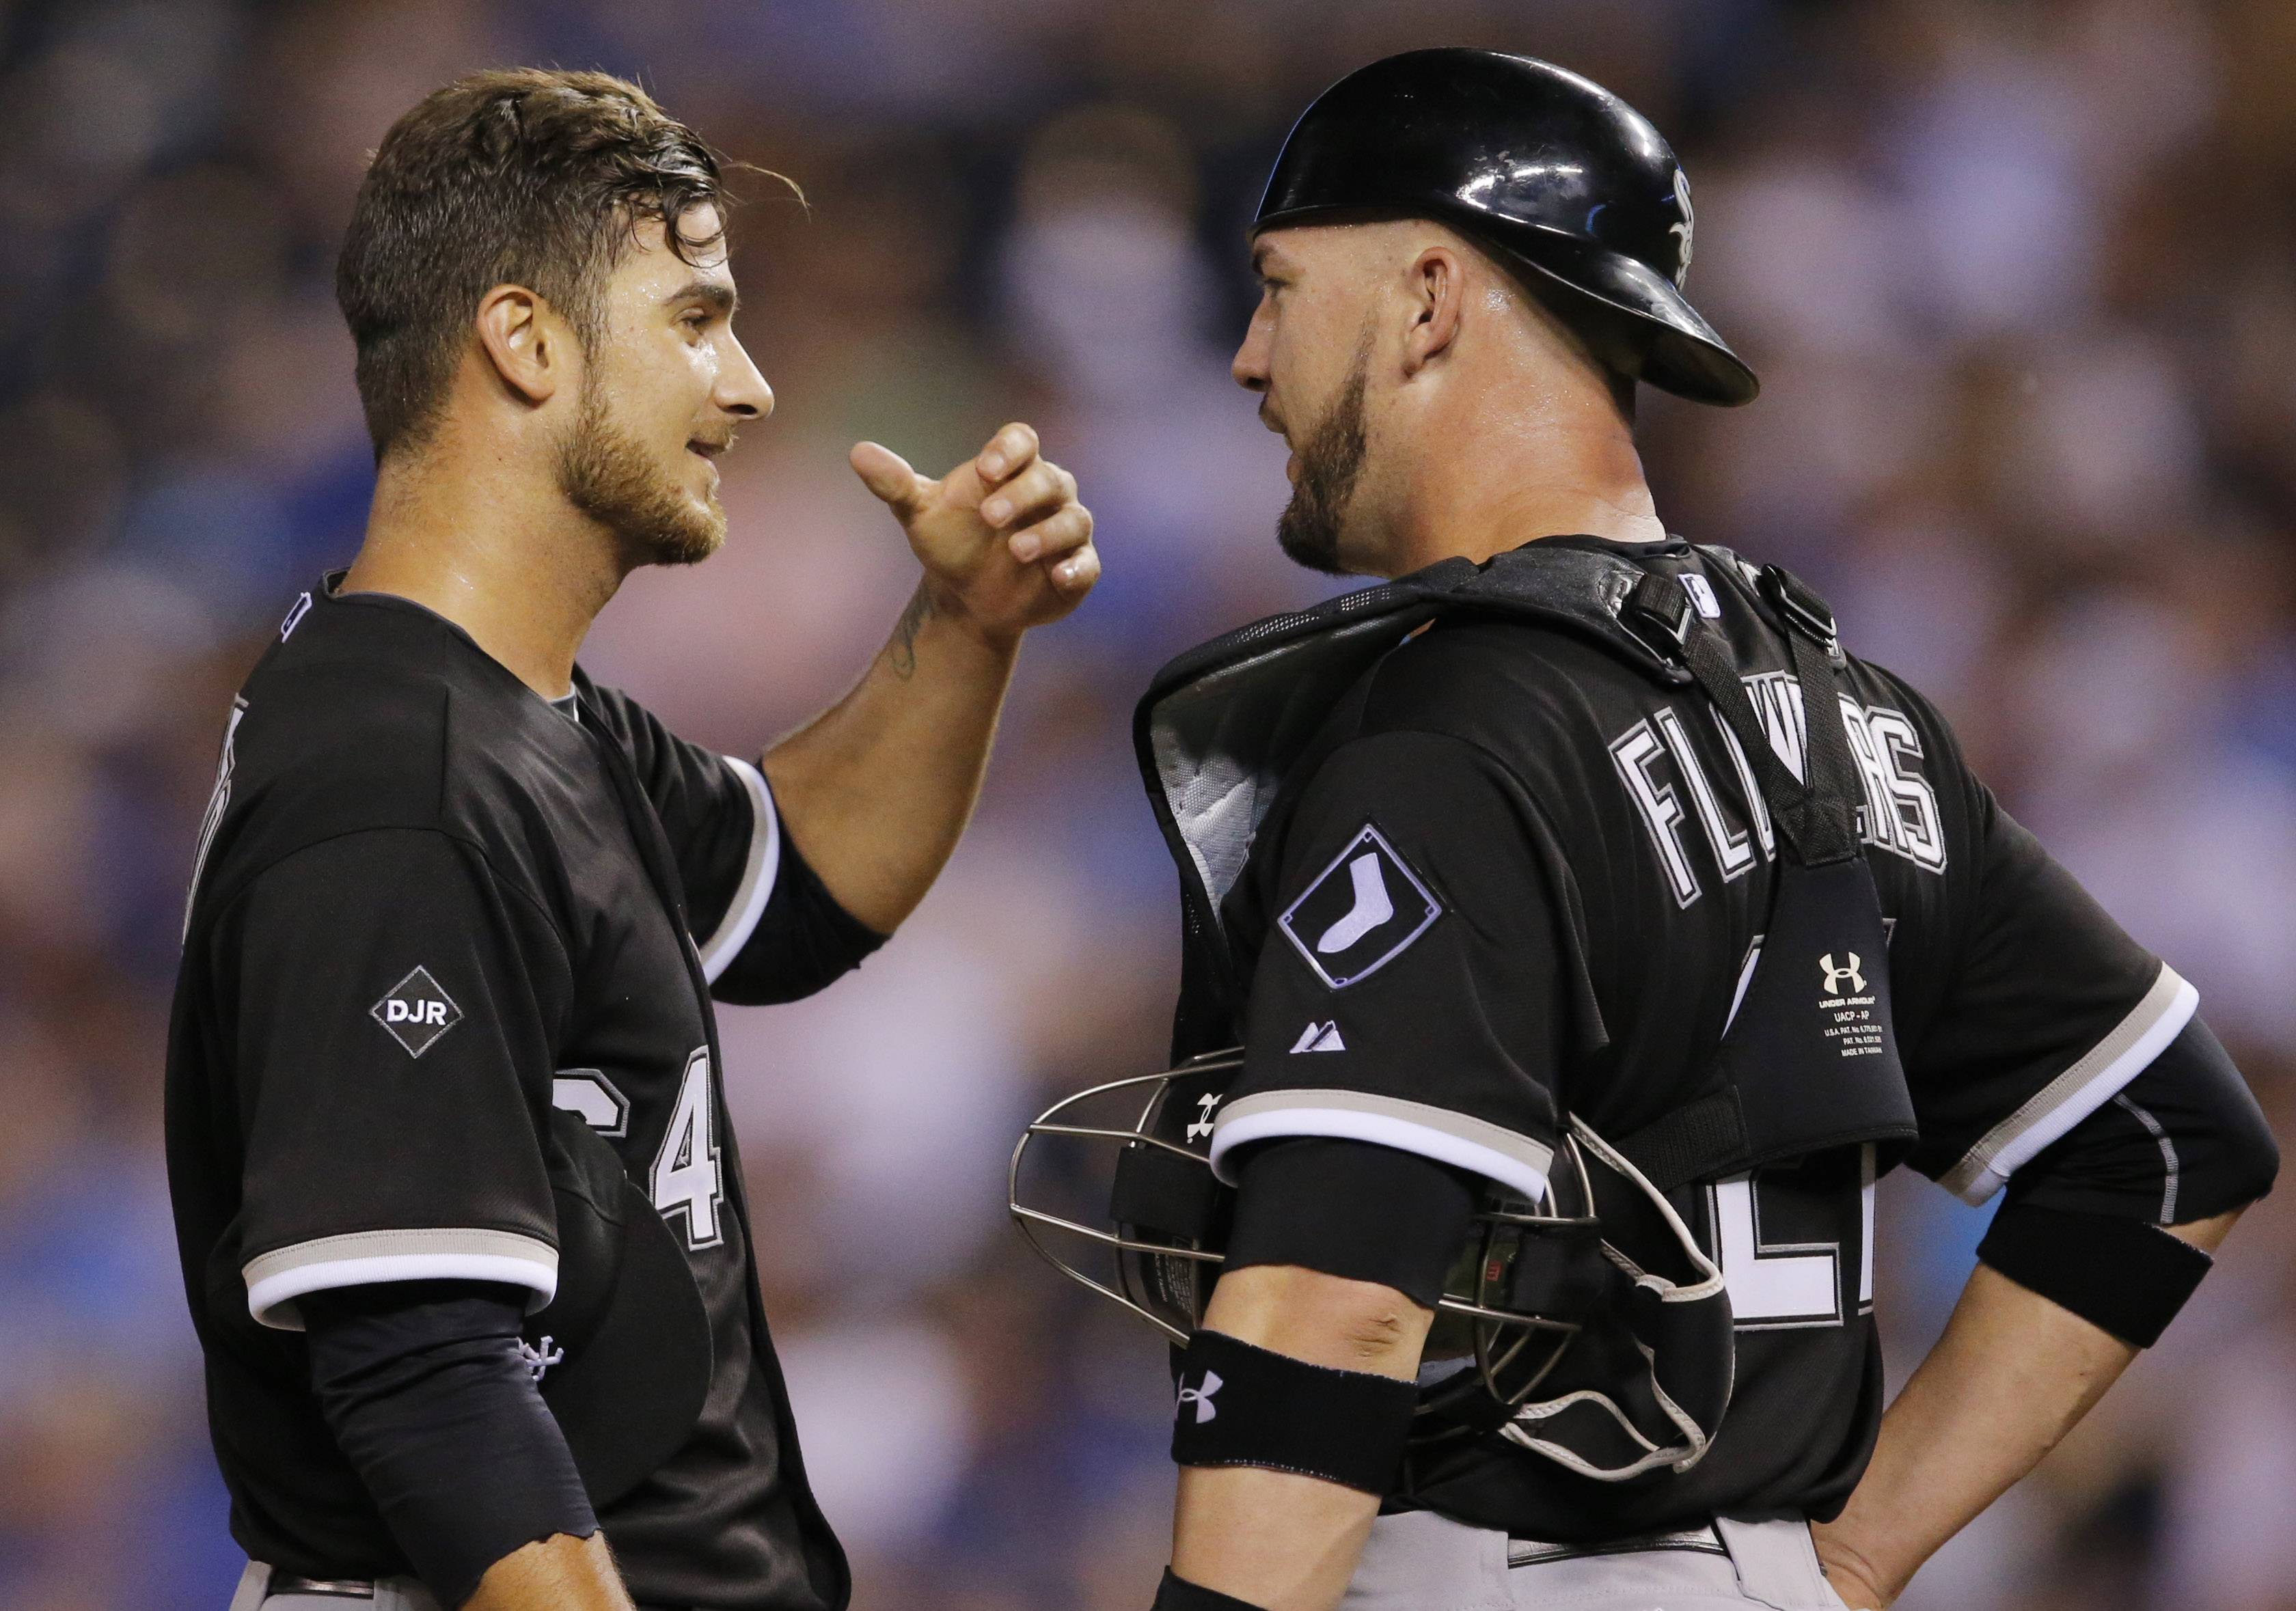 Chicago White Sox starting pitcher Andre Rienzo, left, talks with catcher Tyler Flowers (21) during the sixth inning of a baseball game Tuesday against the Kansas City Royals at Kauffman Stadium in Kansas City, Mo.